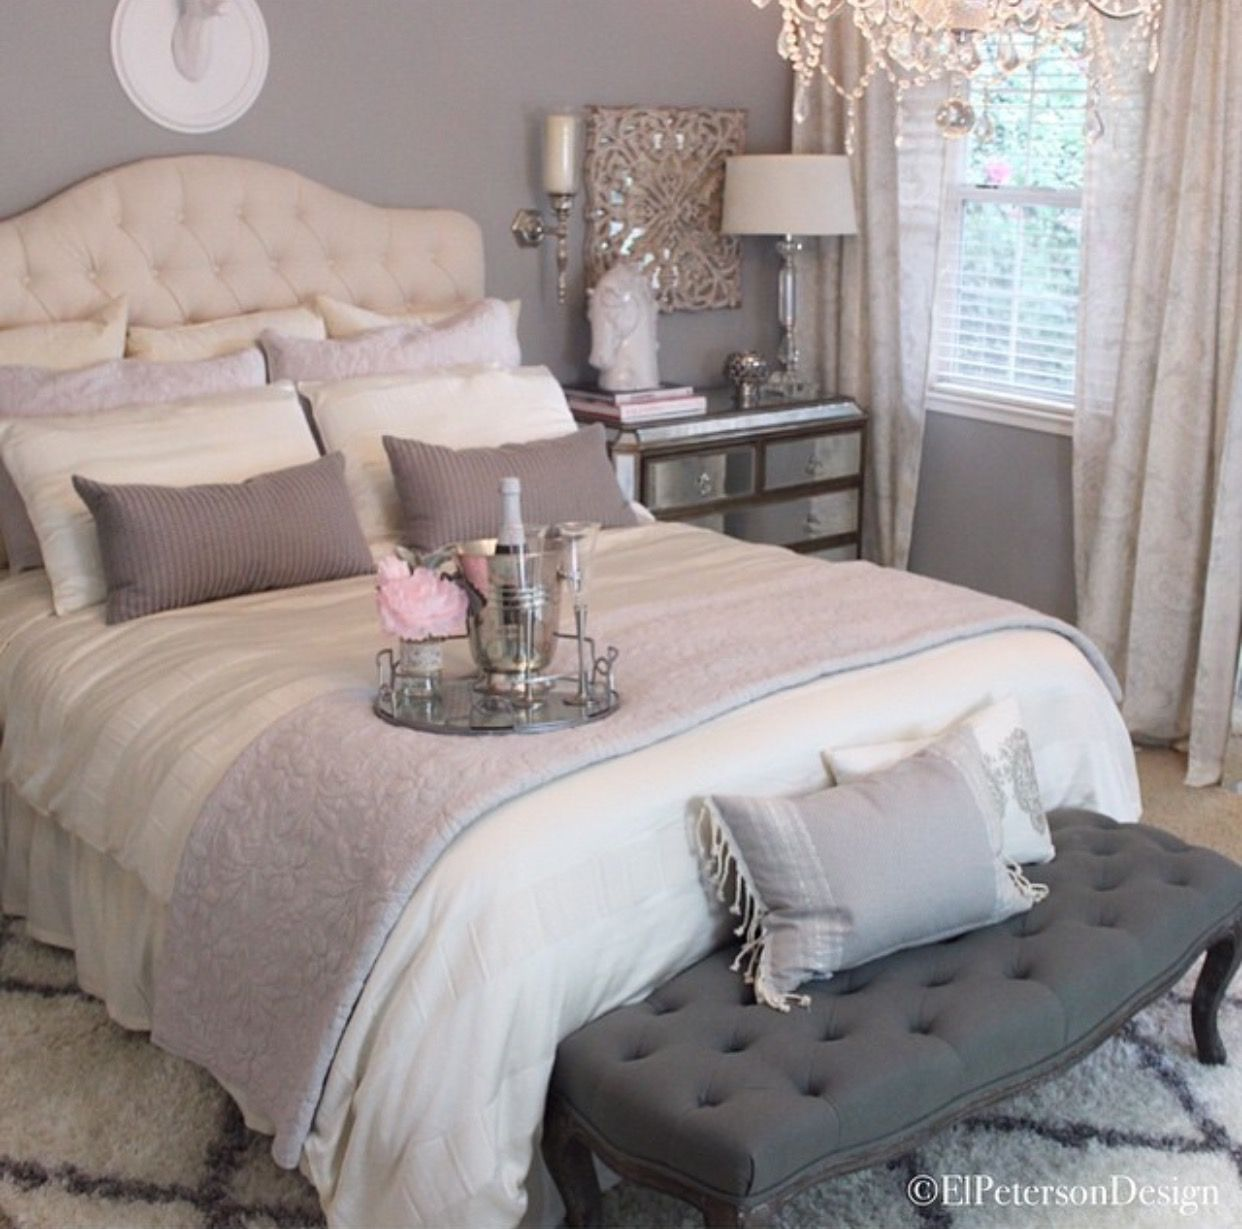 Charmant Oh The Wonderful Little Details In This Neutral, Chic, Romantic Bedroom  Grey Room